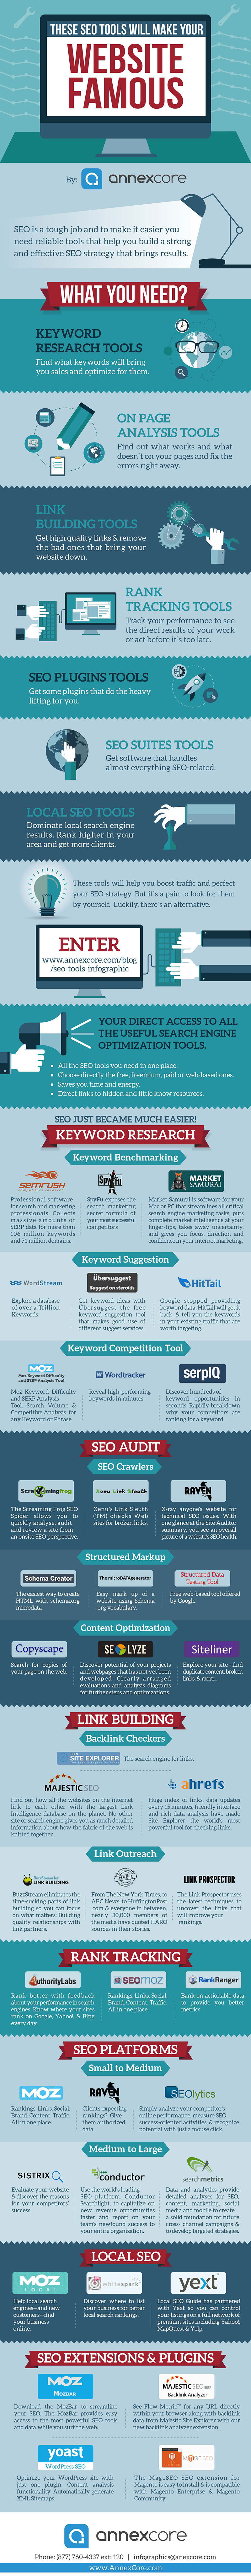 These search engine optimization Tools Will Make Your Website Famous - #Infographic